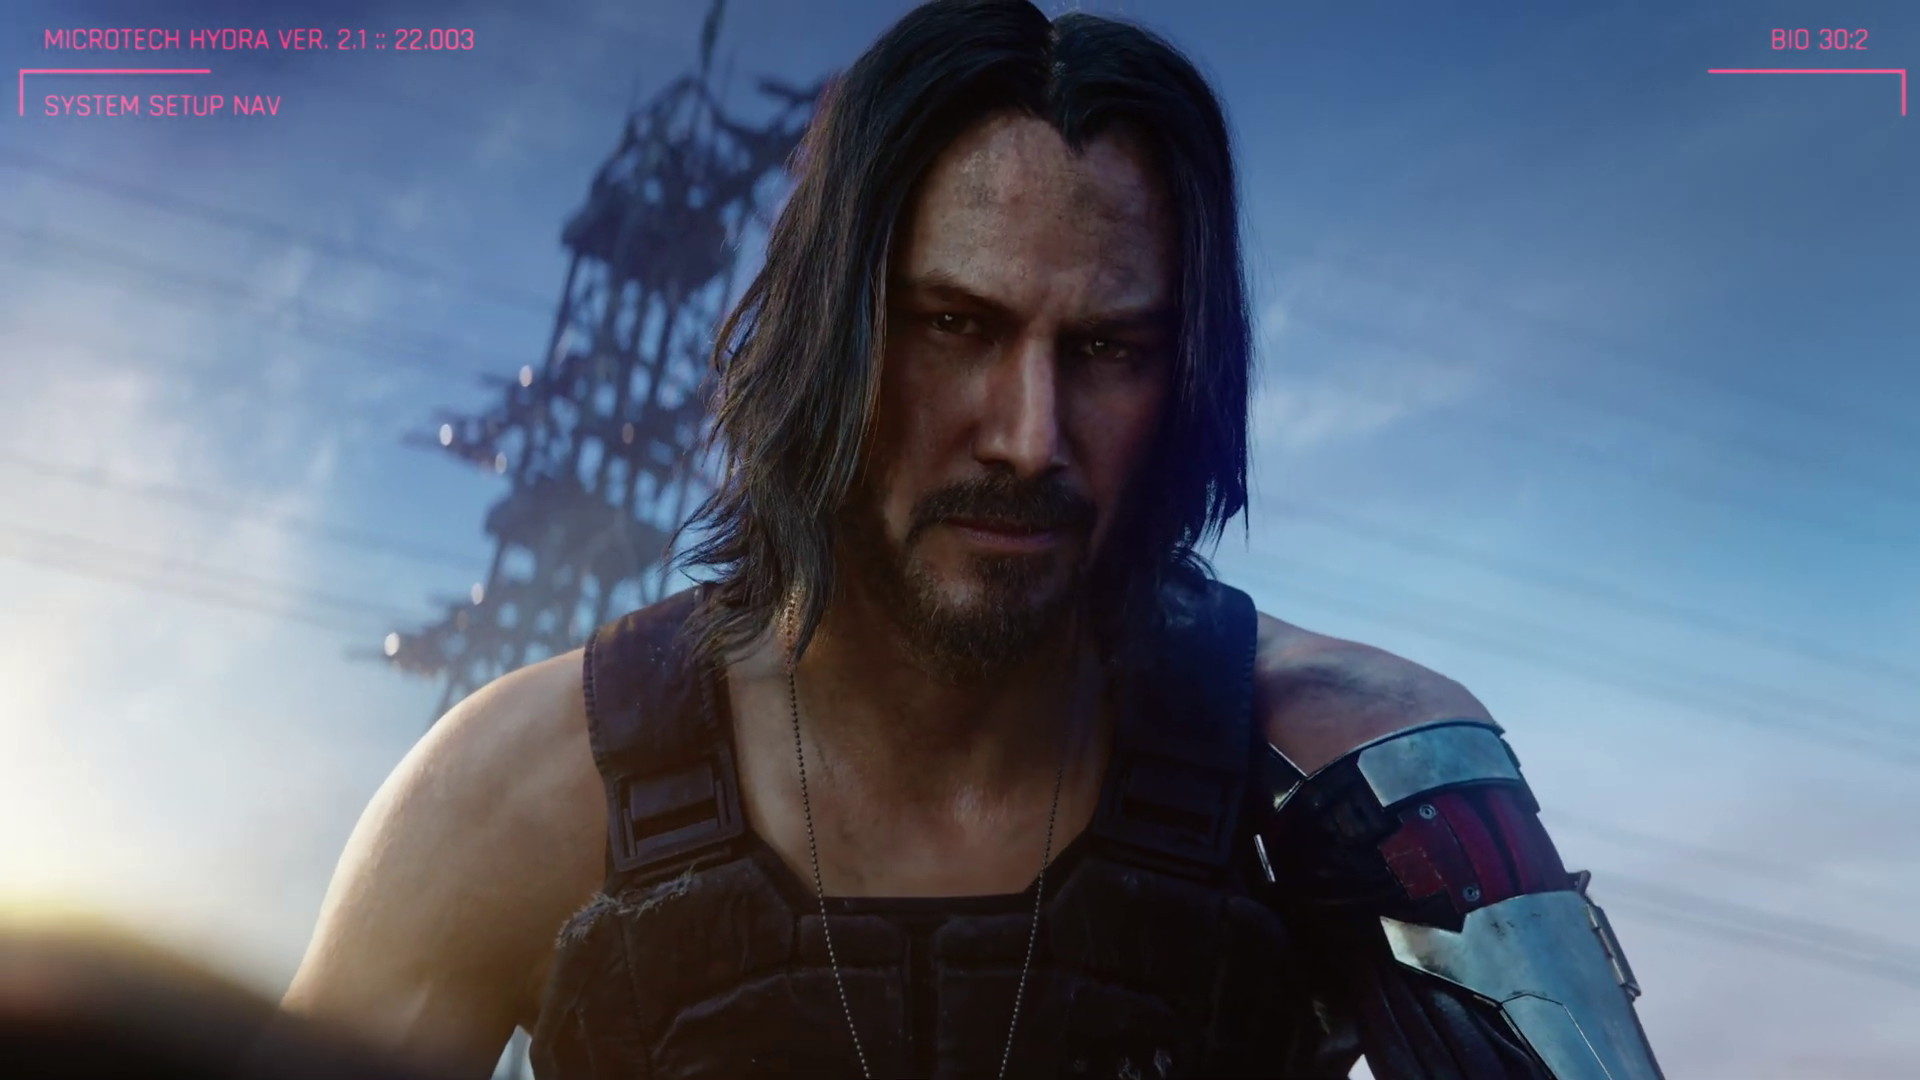 CD Projekt studio head hopes to make multiplayer games set in The Witcher and Cyberpunk 2077